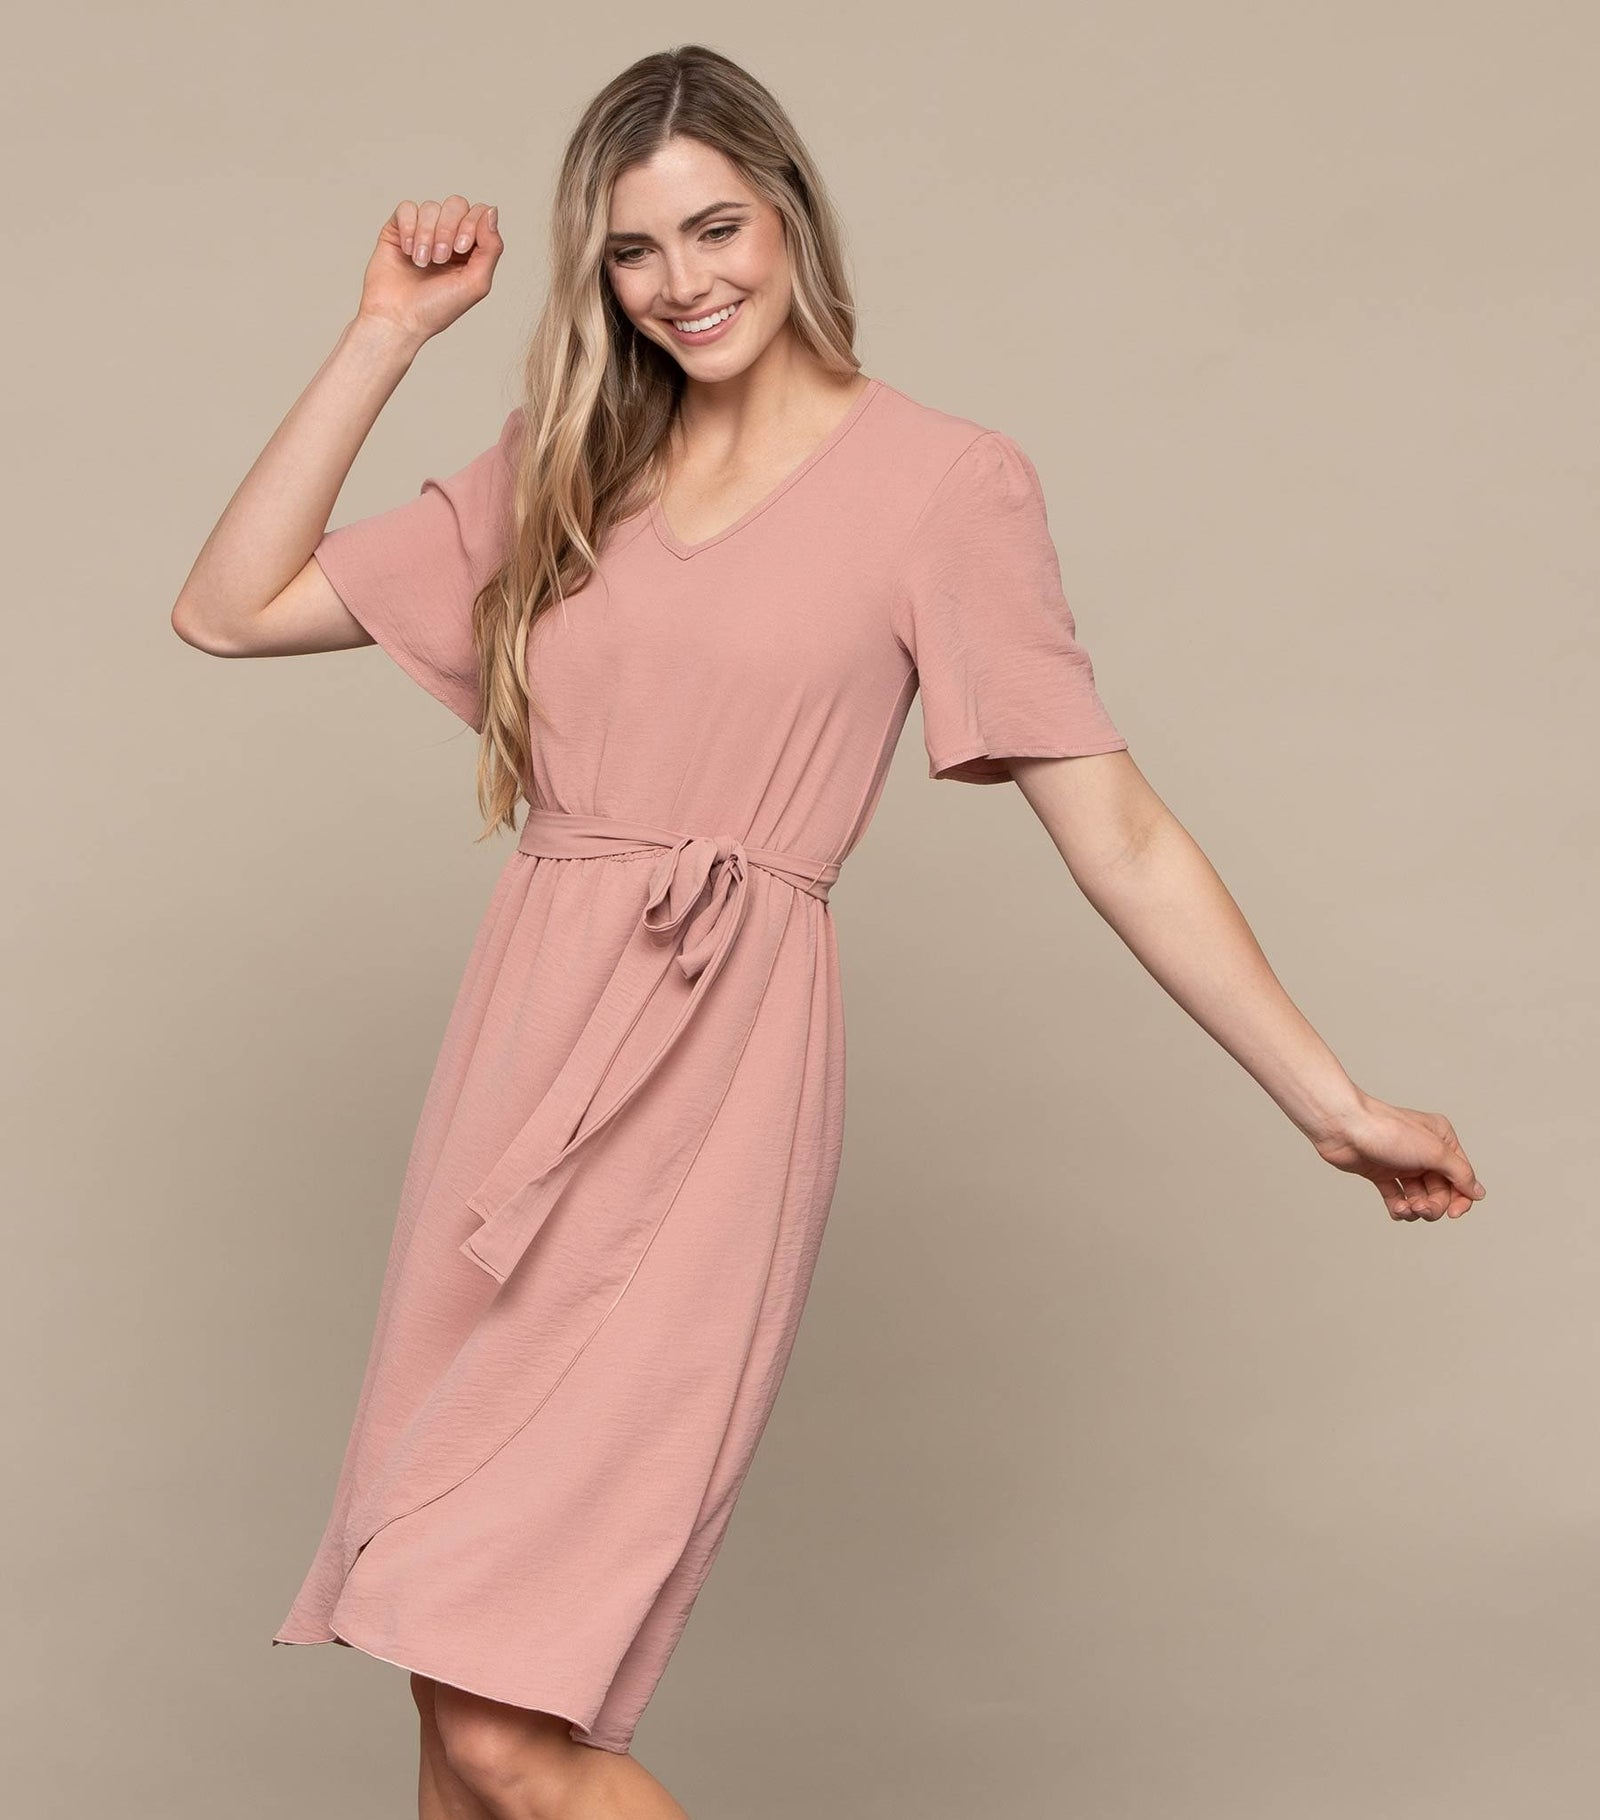 aee8d2151b6 Womens Dresses - Downeast